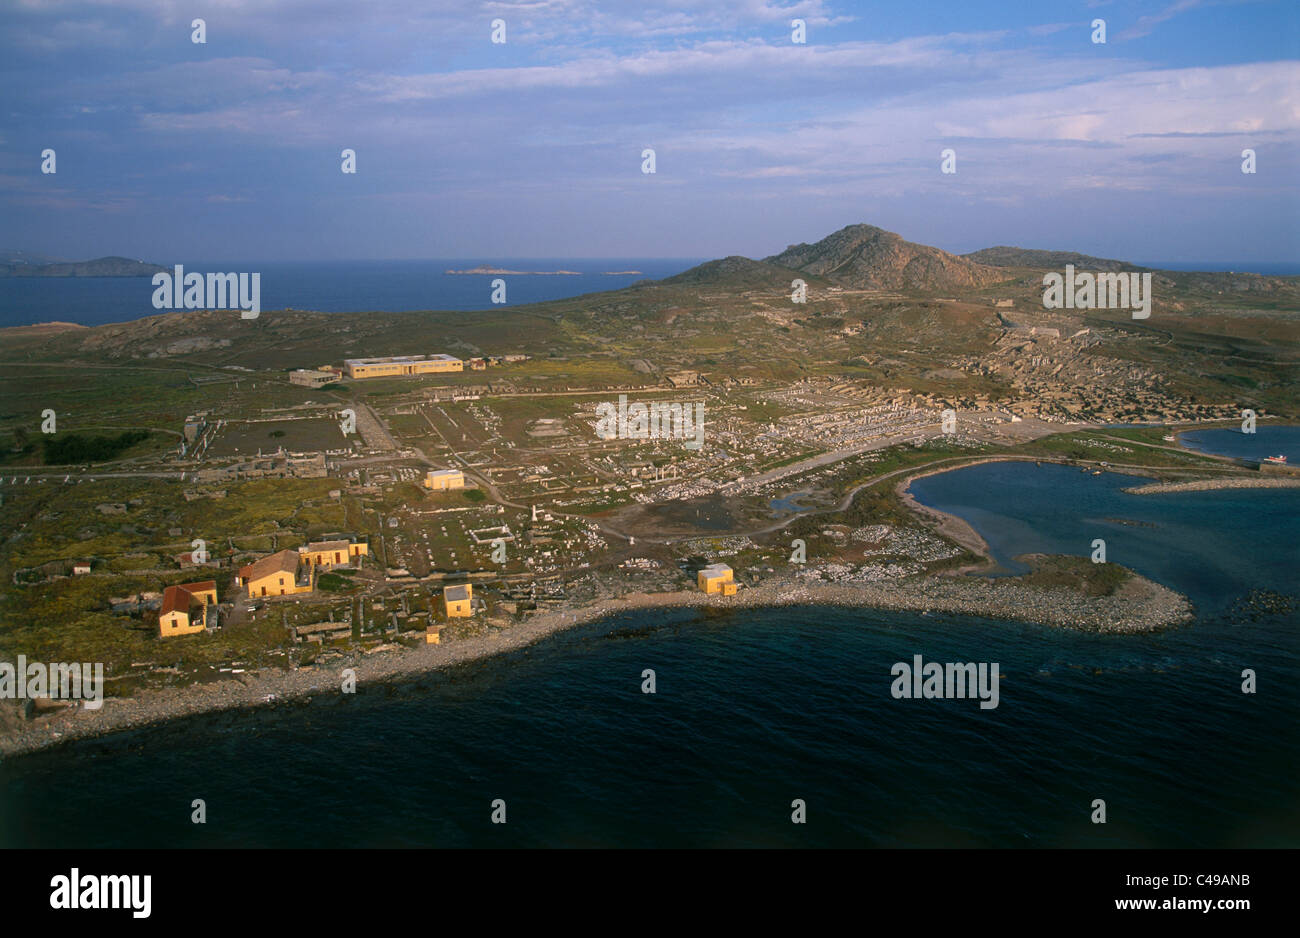 Aerial photograph of the ruins of an ancient Greek city on the Greek island of Delos - Stock Image